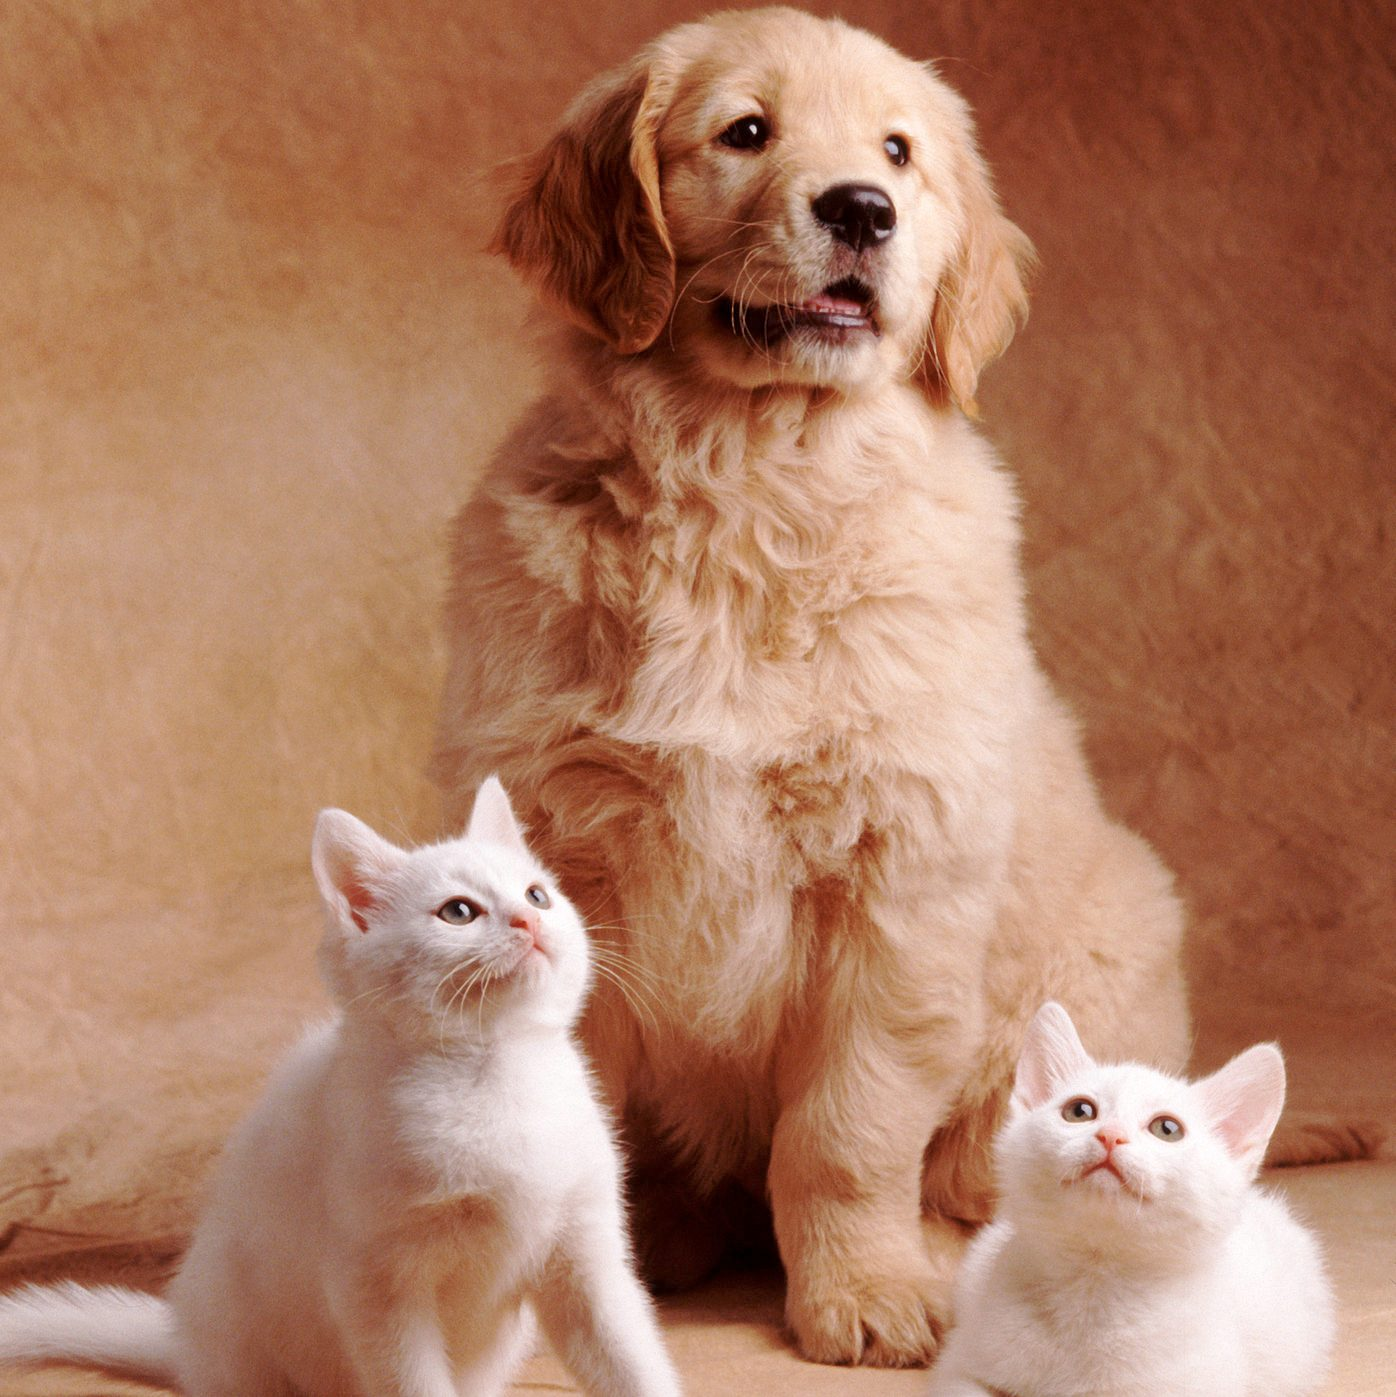 Golden Retriever Puppy Posing with Kittens